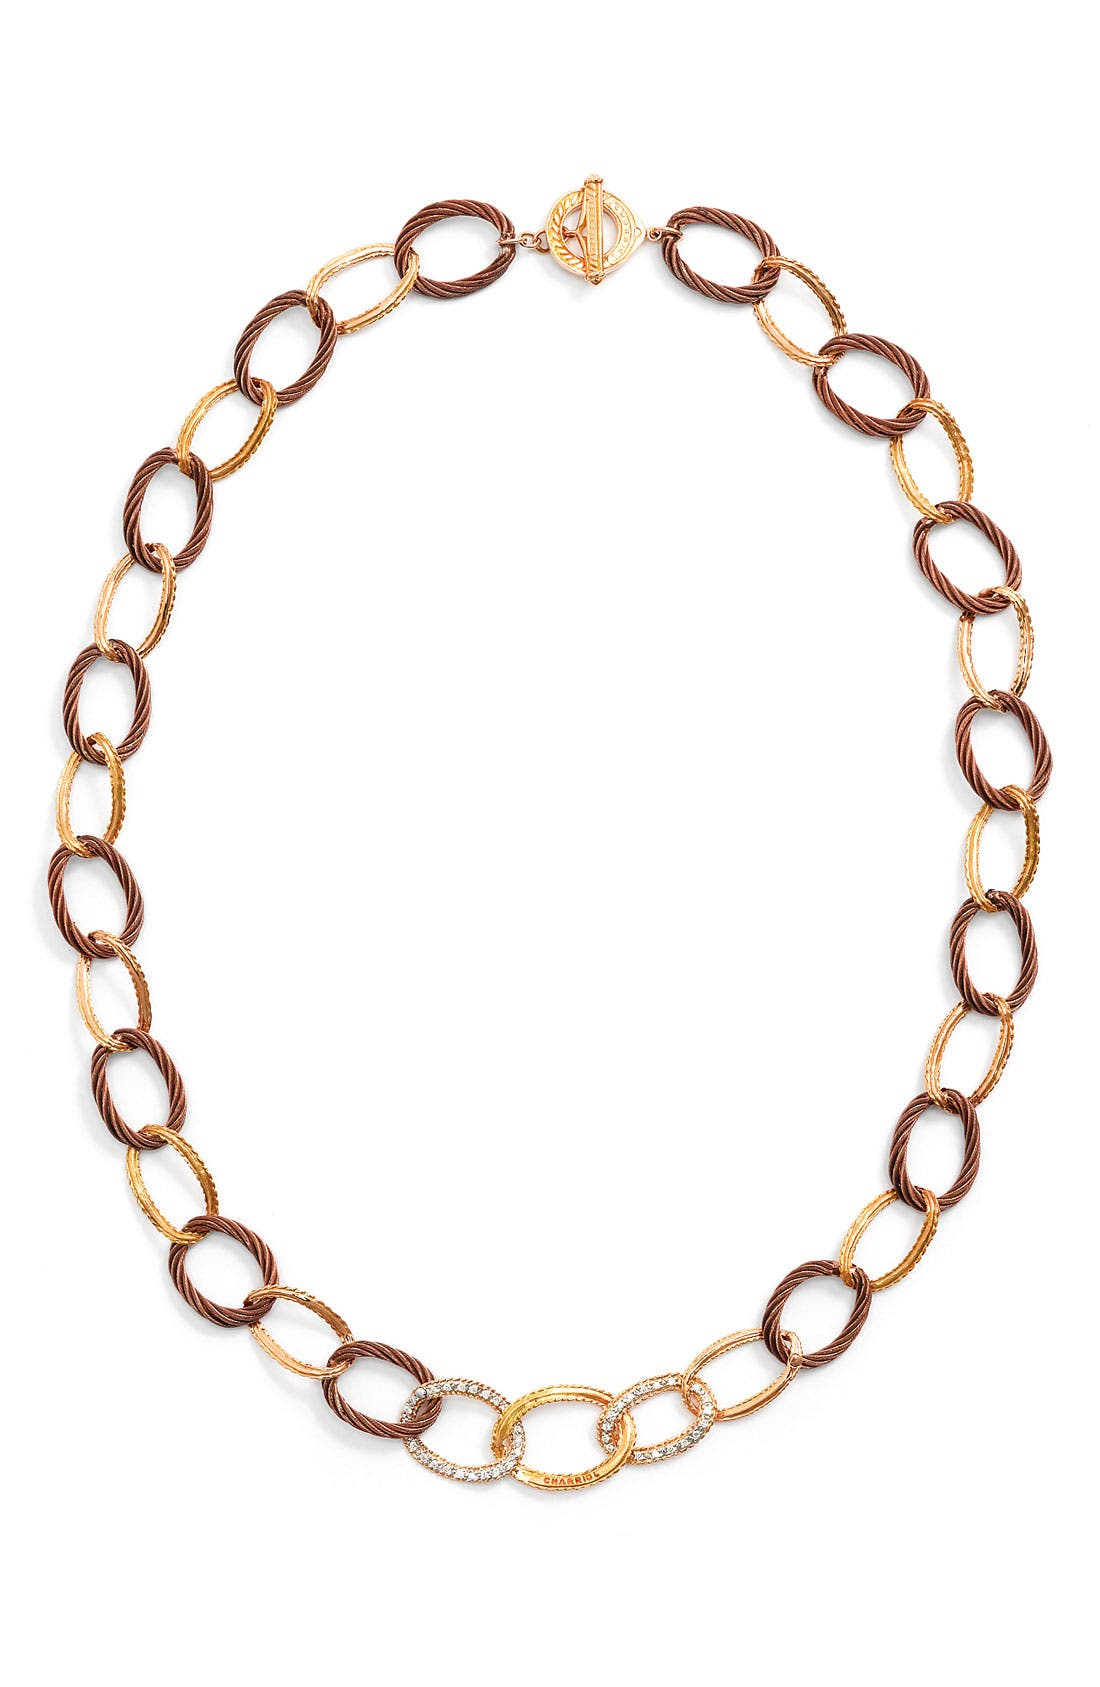 Alternate Image 1 Selected - ALOR® Gold, Diamond & Bronze Necklace